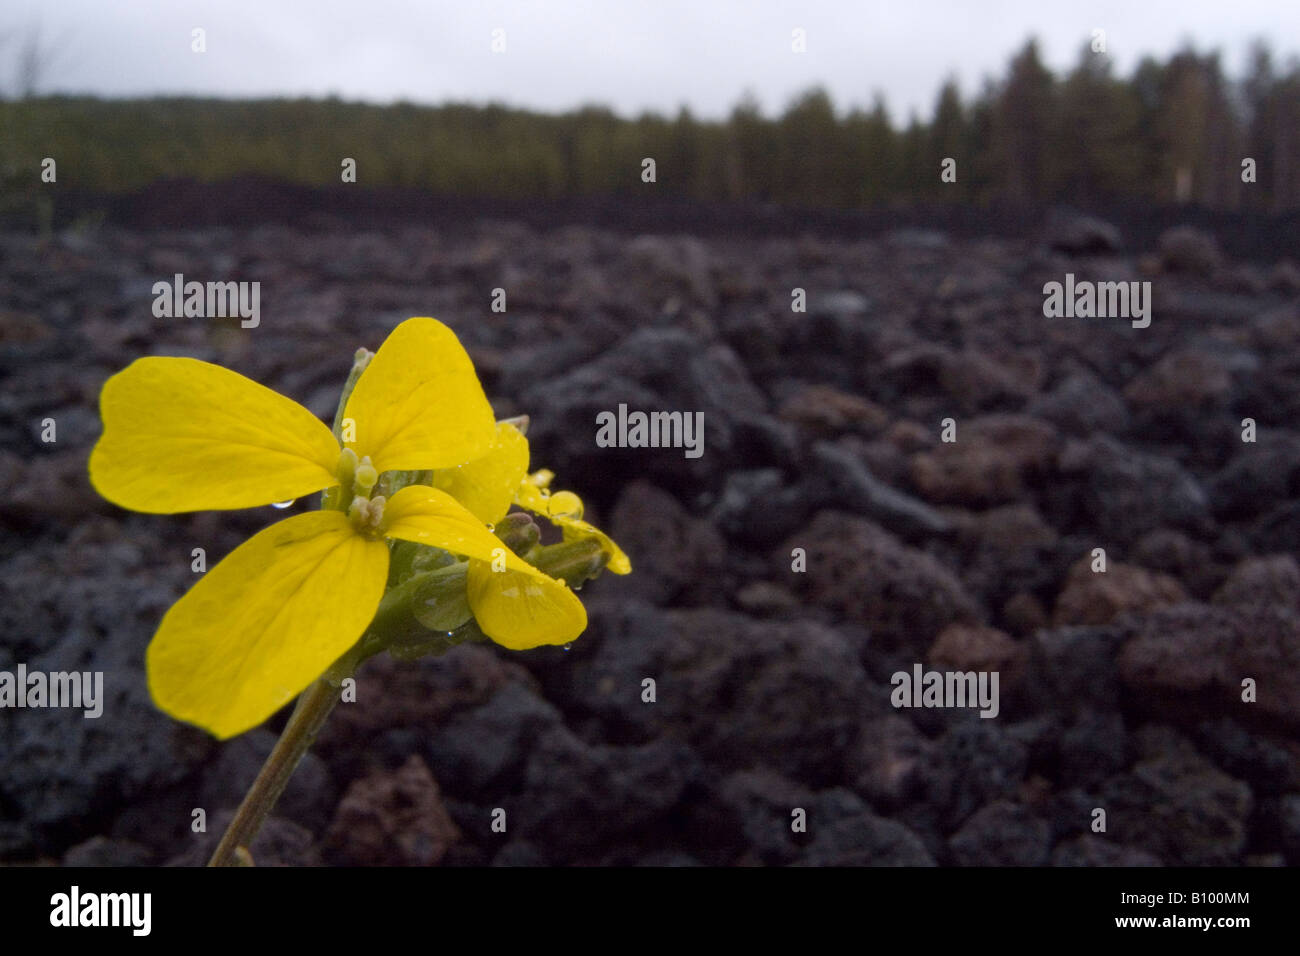 Flower emerging from lava near the summit of Mount Etna Sicily Italy Picture by Andrew Hasson April 26th 2008 - Stock Image